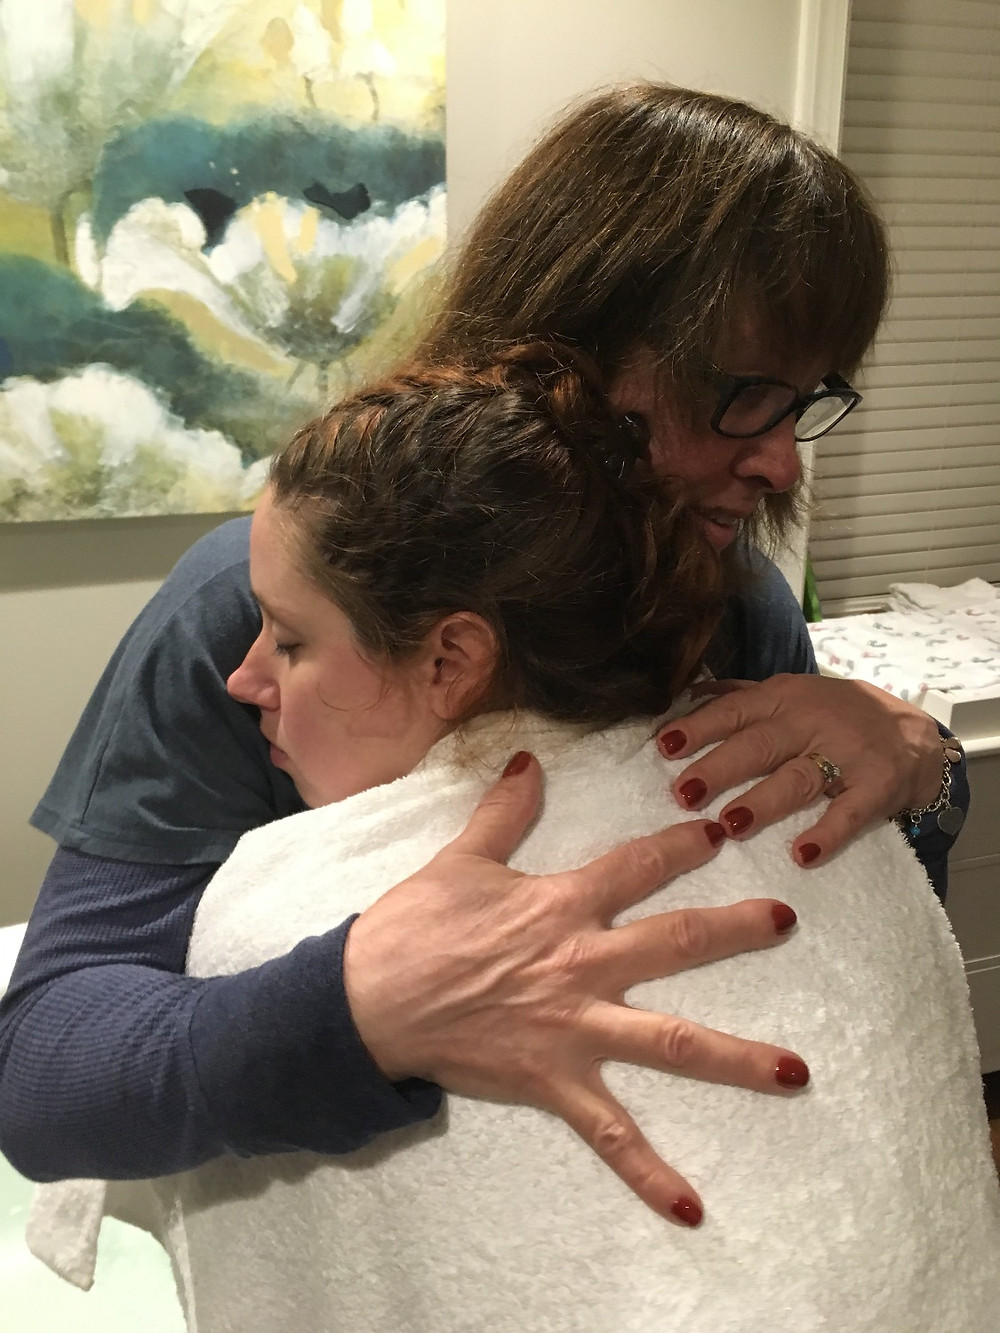 Doula embraces laboring mom during contraction